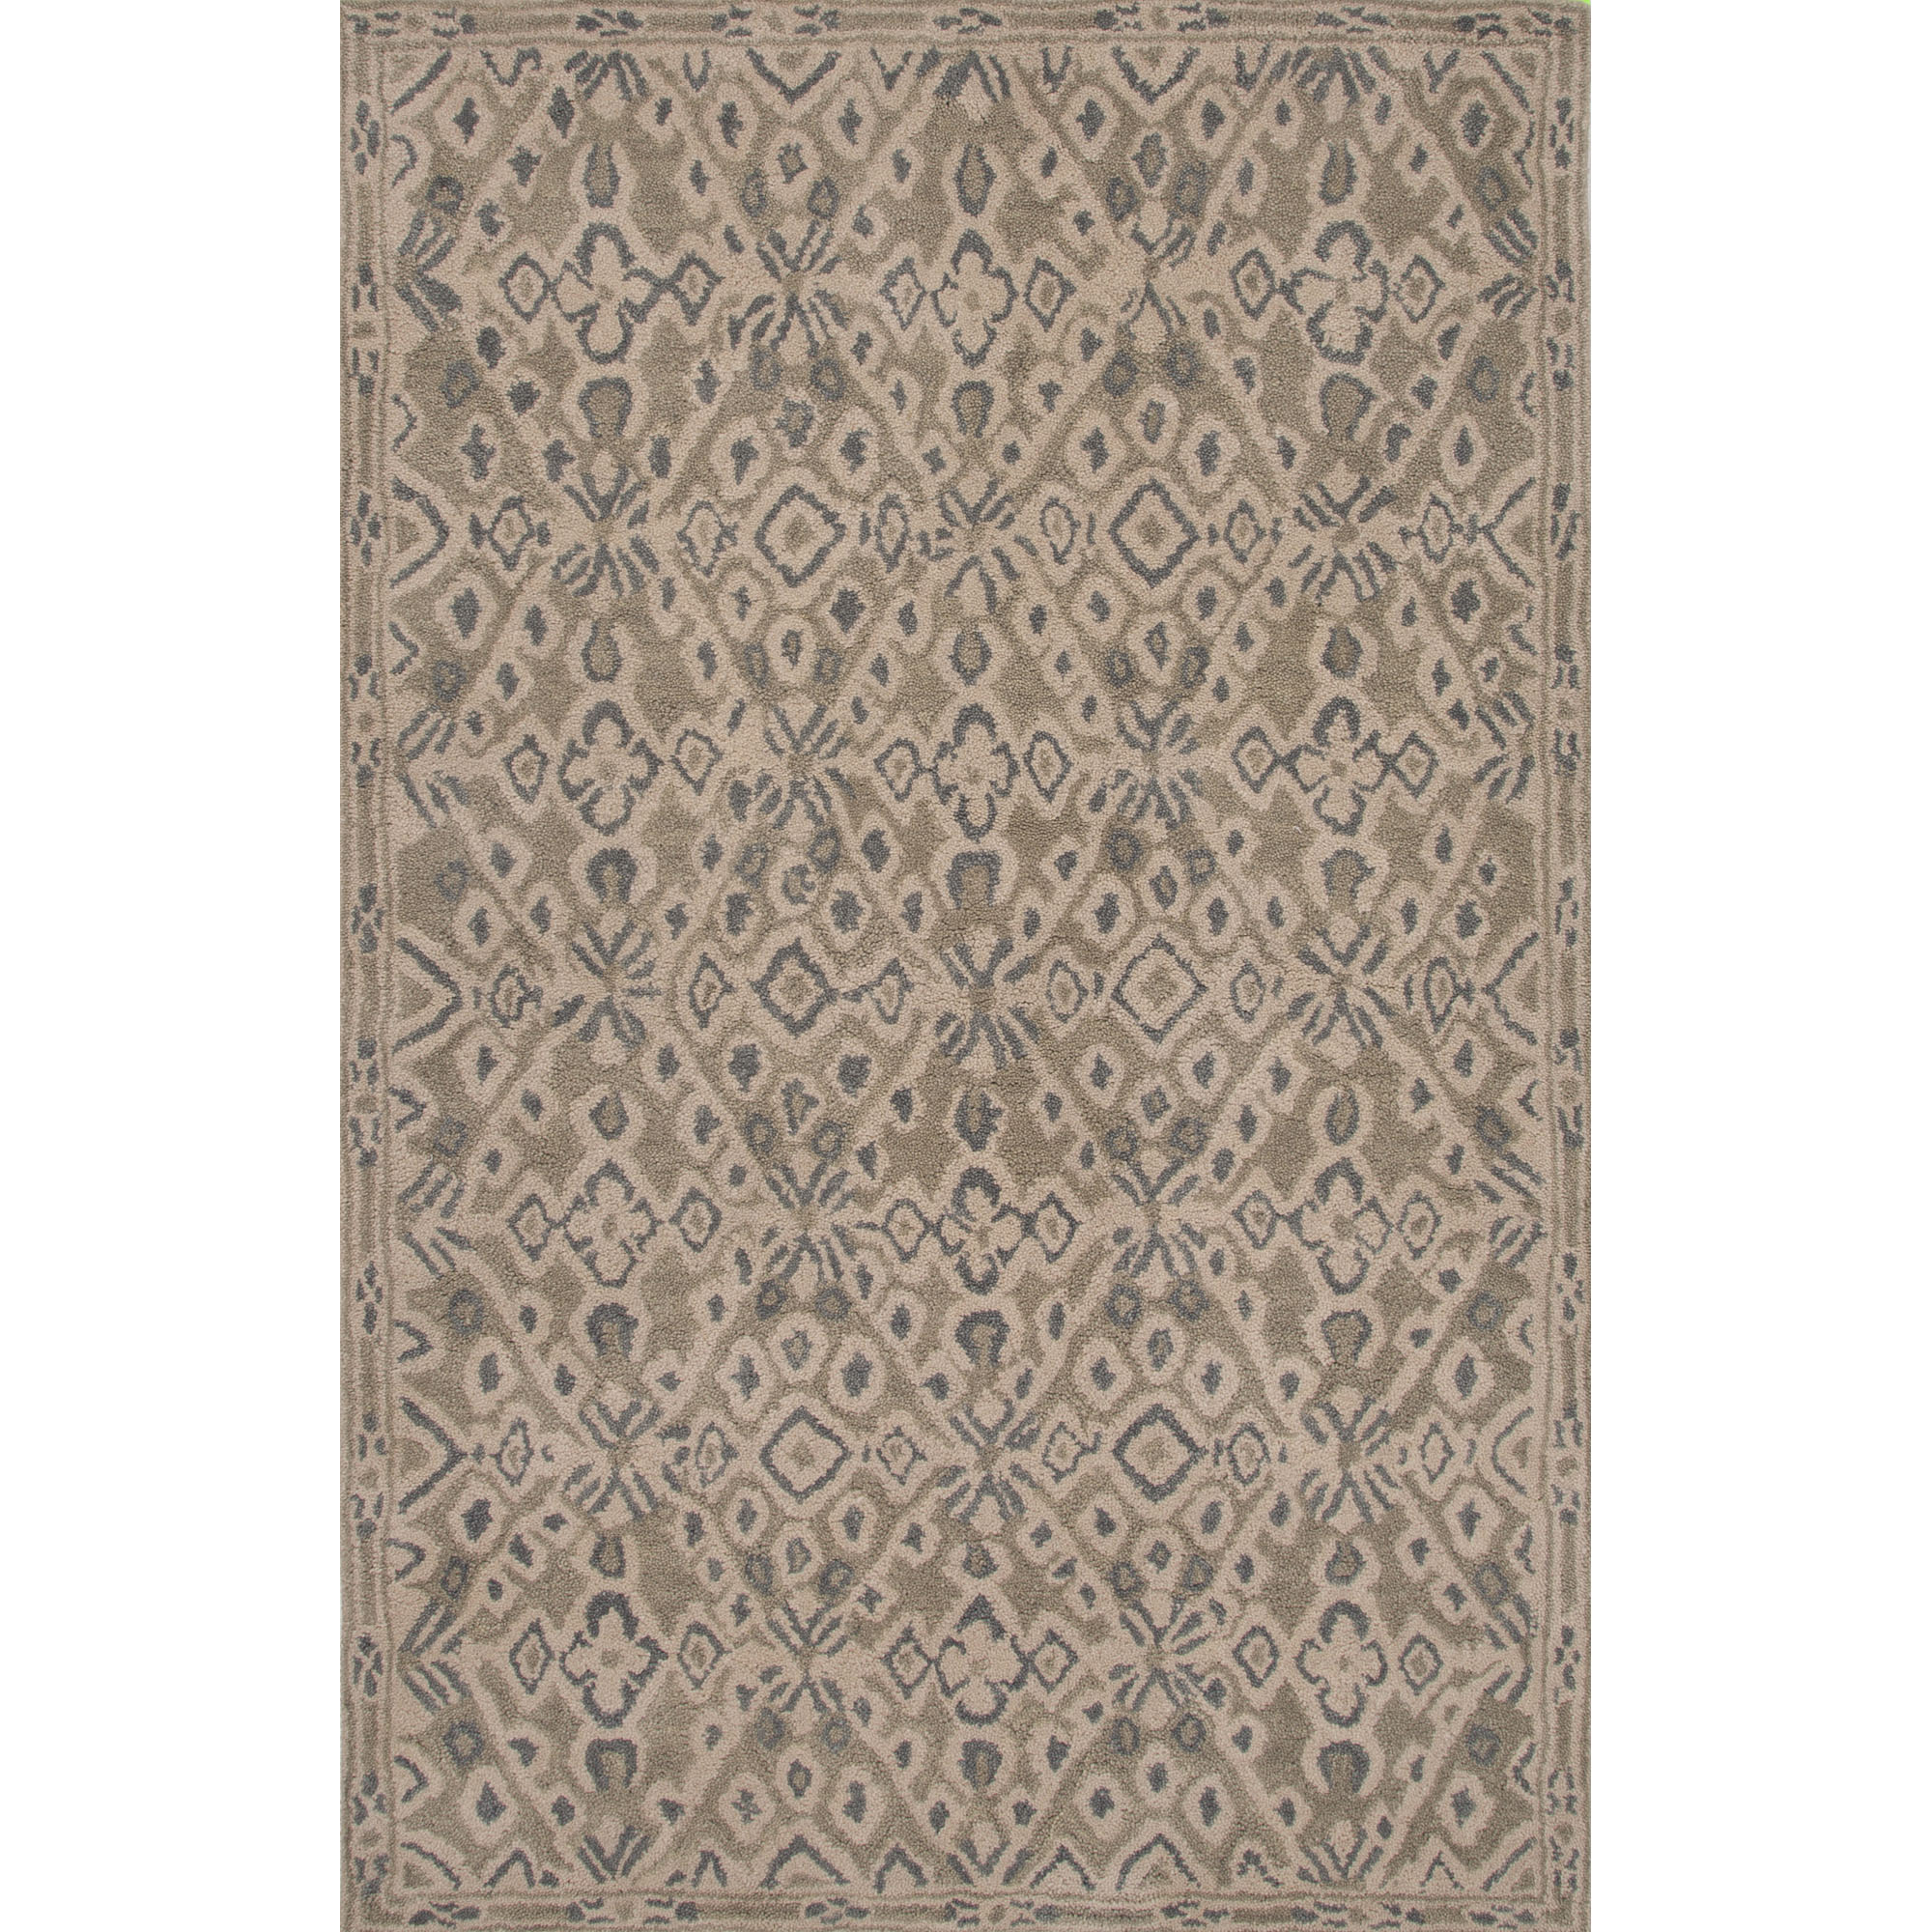 Traditions Made Modern Tufted 2 x 3 Rug by JAIPUR Rugs at Sprintz Furniture